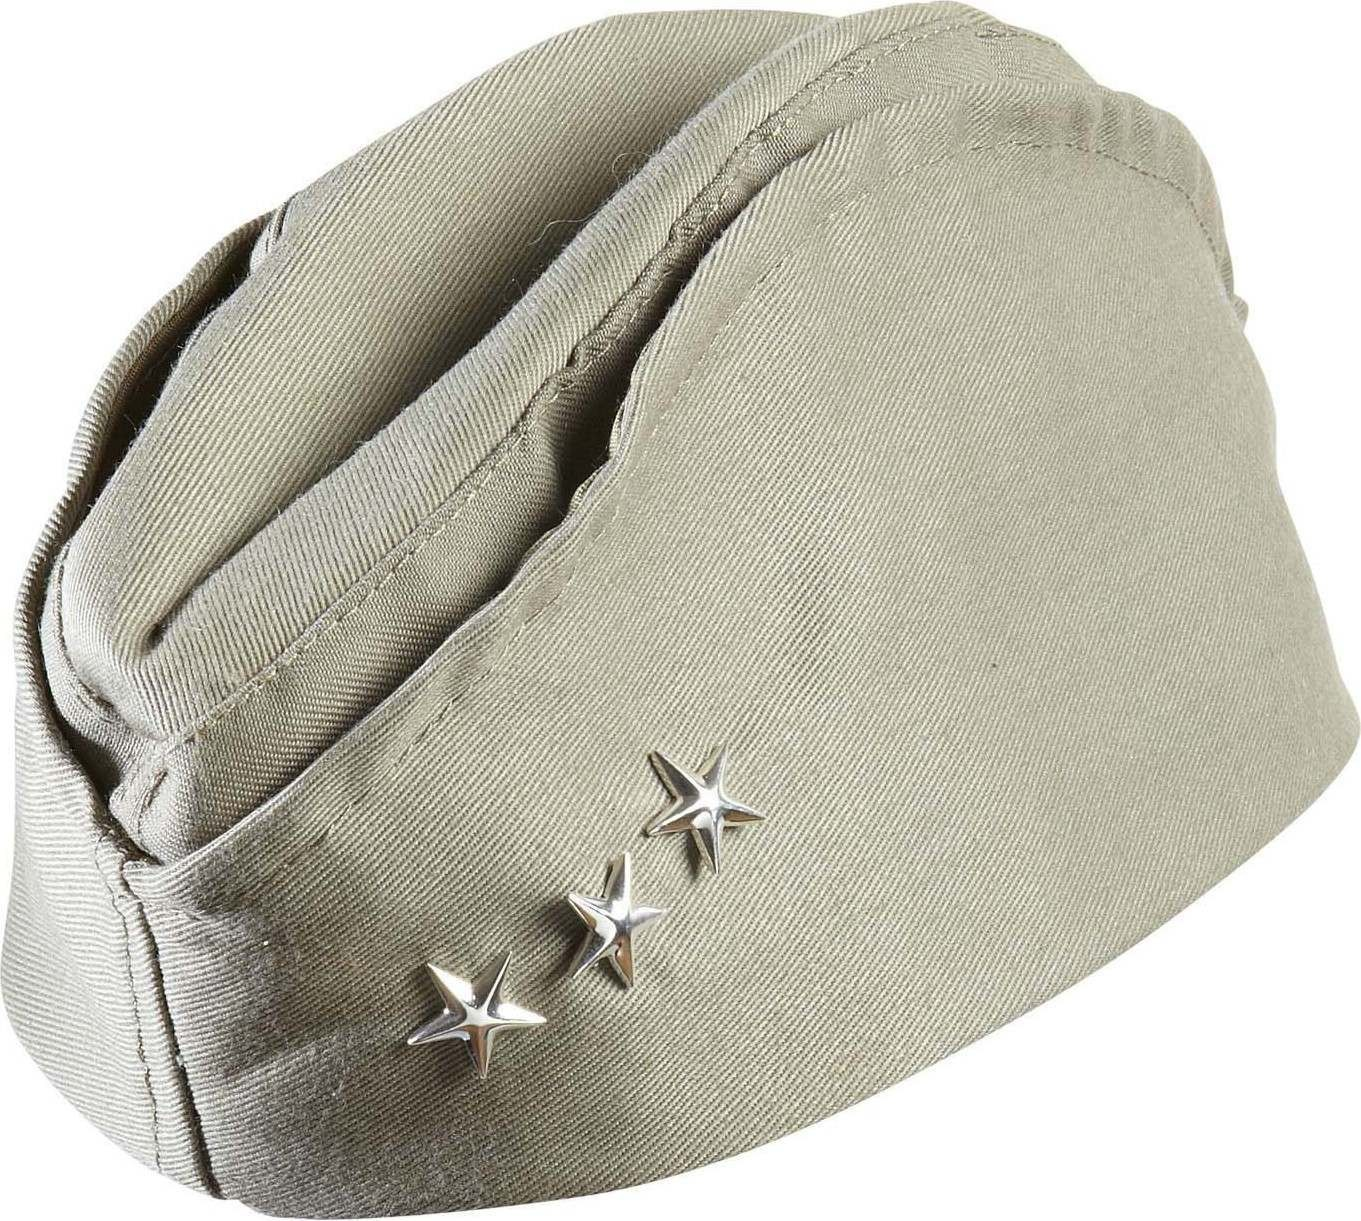 Ww2 American Soldier Hat W/ 3 Stars Hats